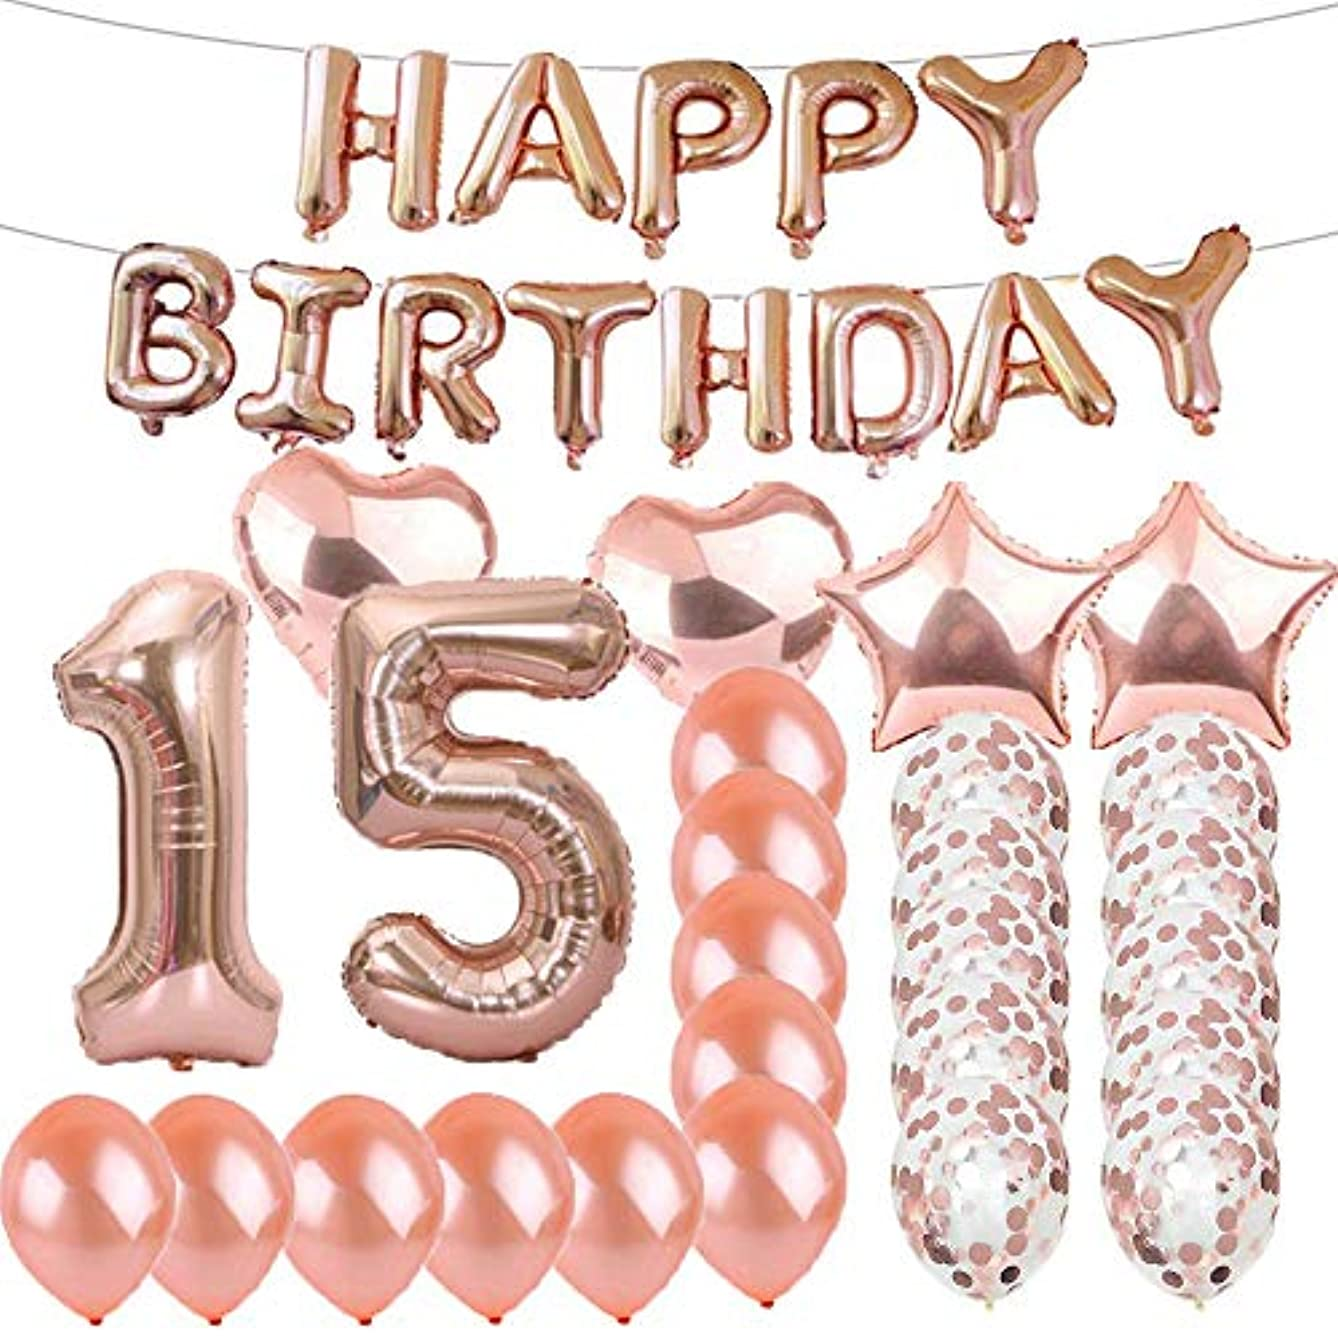 Sweet 15th Birthday Decorations Party Supplies,Rose Gold Number 15 Balloons,15th Foil Mylar Balloons Latex Balloon Decoration,Great 15th Birthday Gifts for Girls,Women,Men,Photo Props